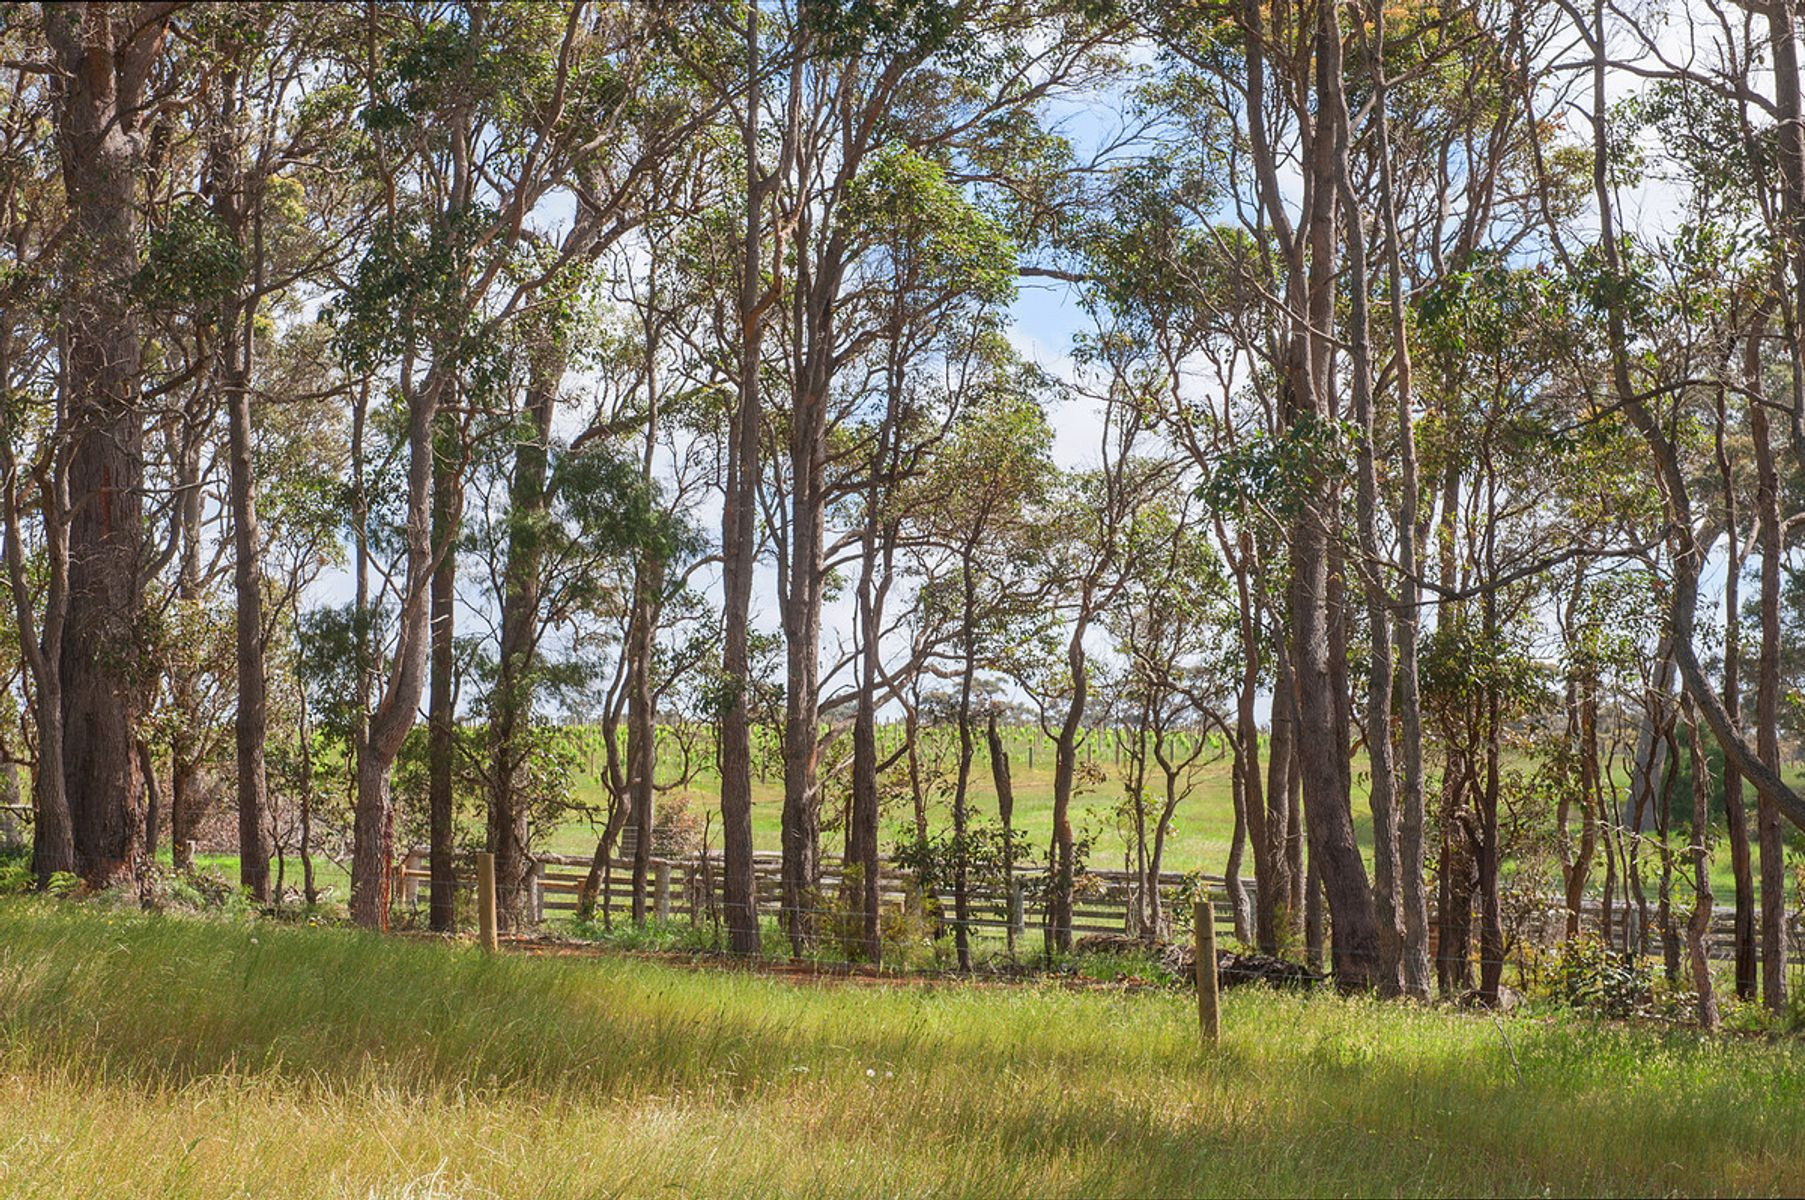 1035 Bussell Highway, Witchcliffe, WA 6286